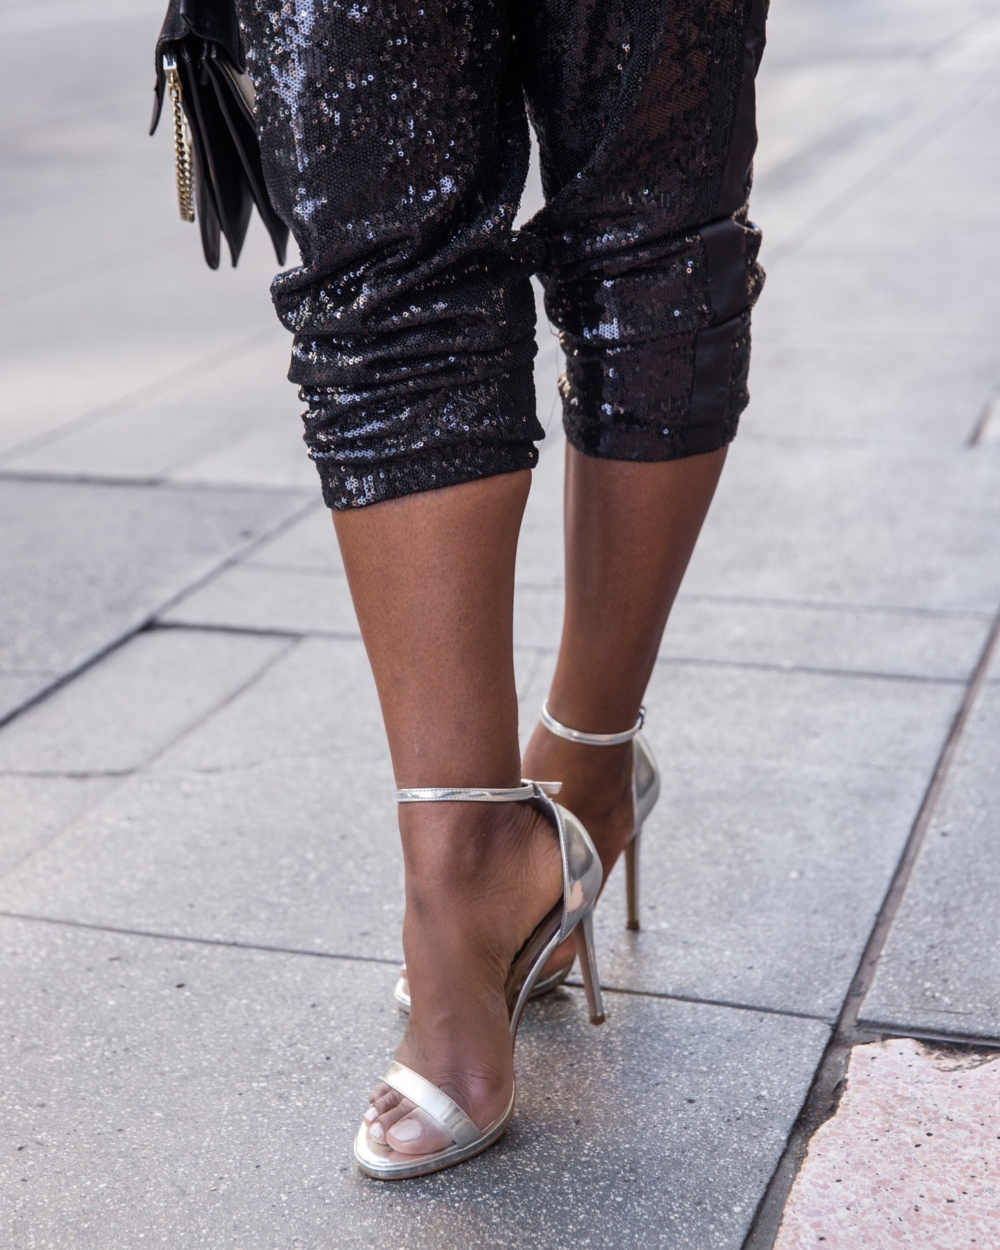 sequins pants for date night